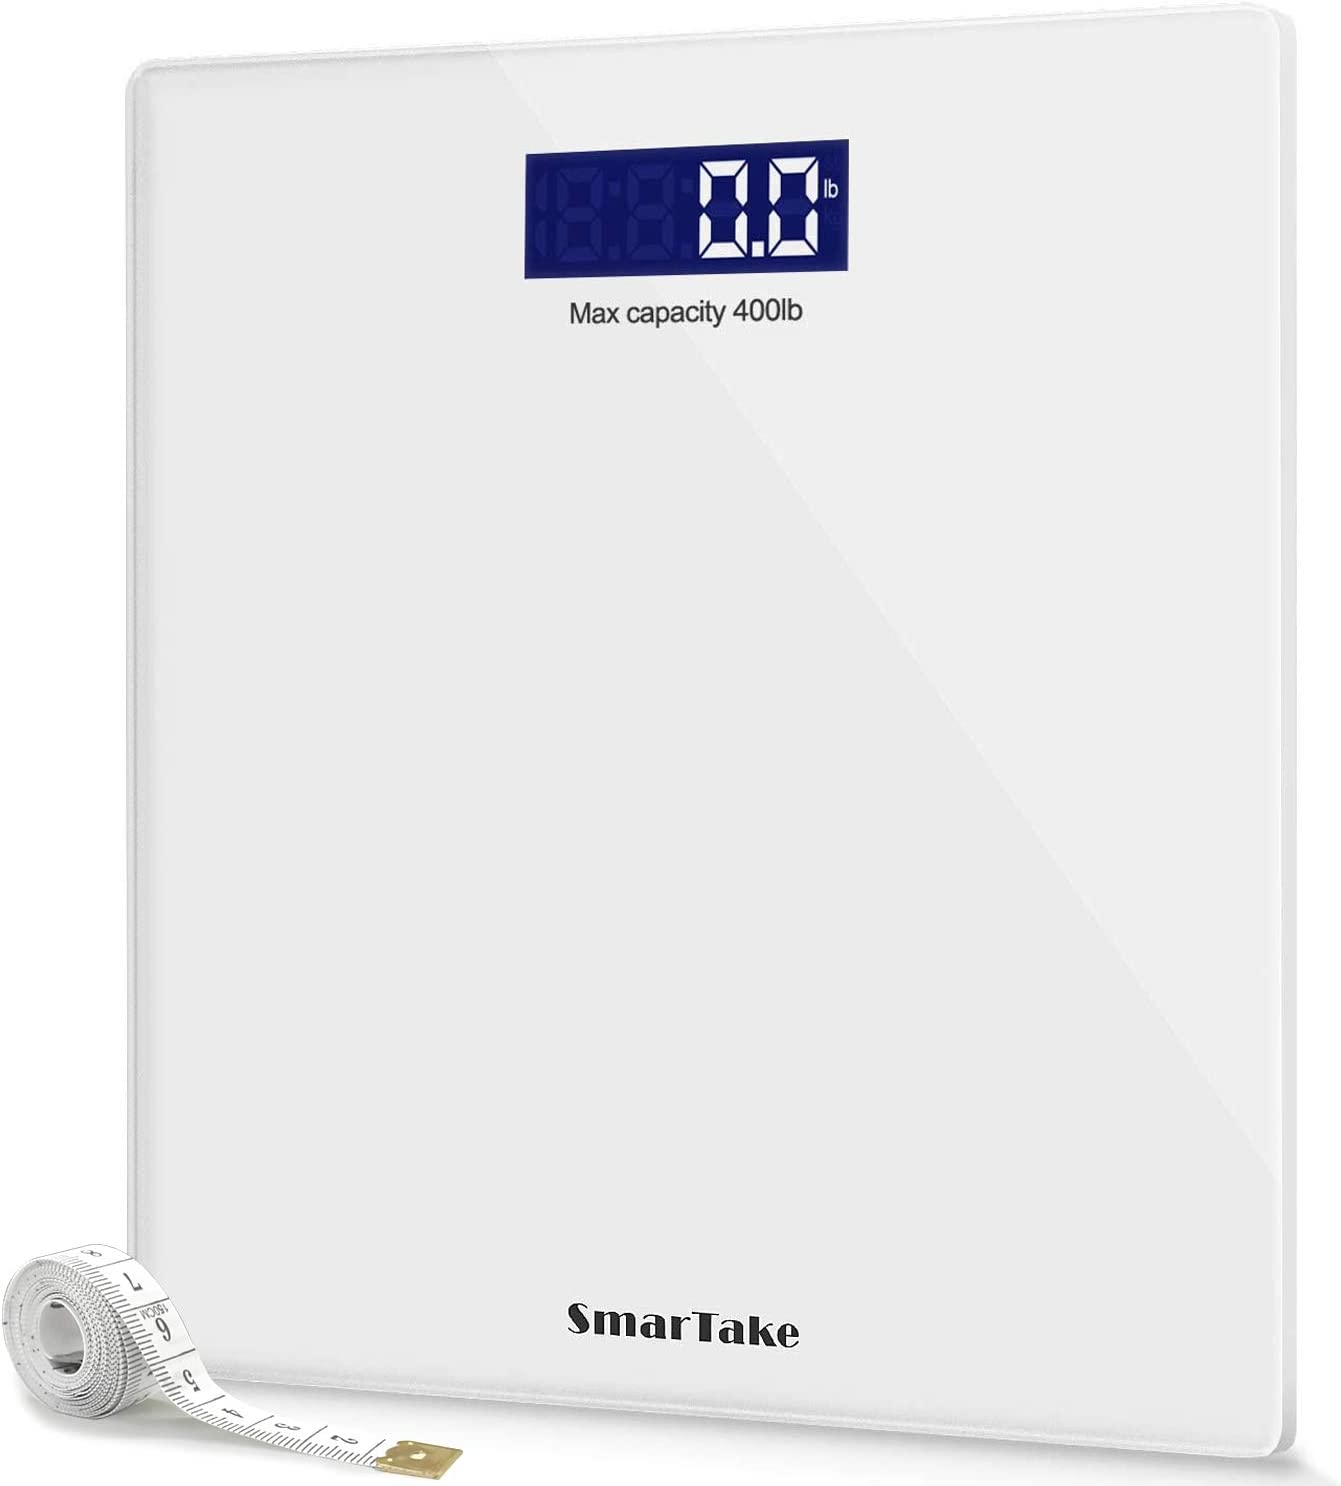 Weight Scale, SmarTake Precision Digital Body Bathroom Scale with Step-On Technology, 6mm Tempered Glass Easy Read Backlit LCD Display, Body Tape Measure Included, 400 Pounds, White